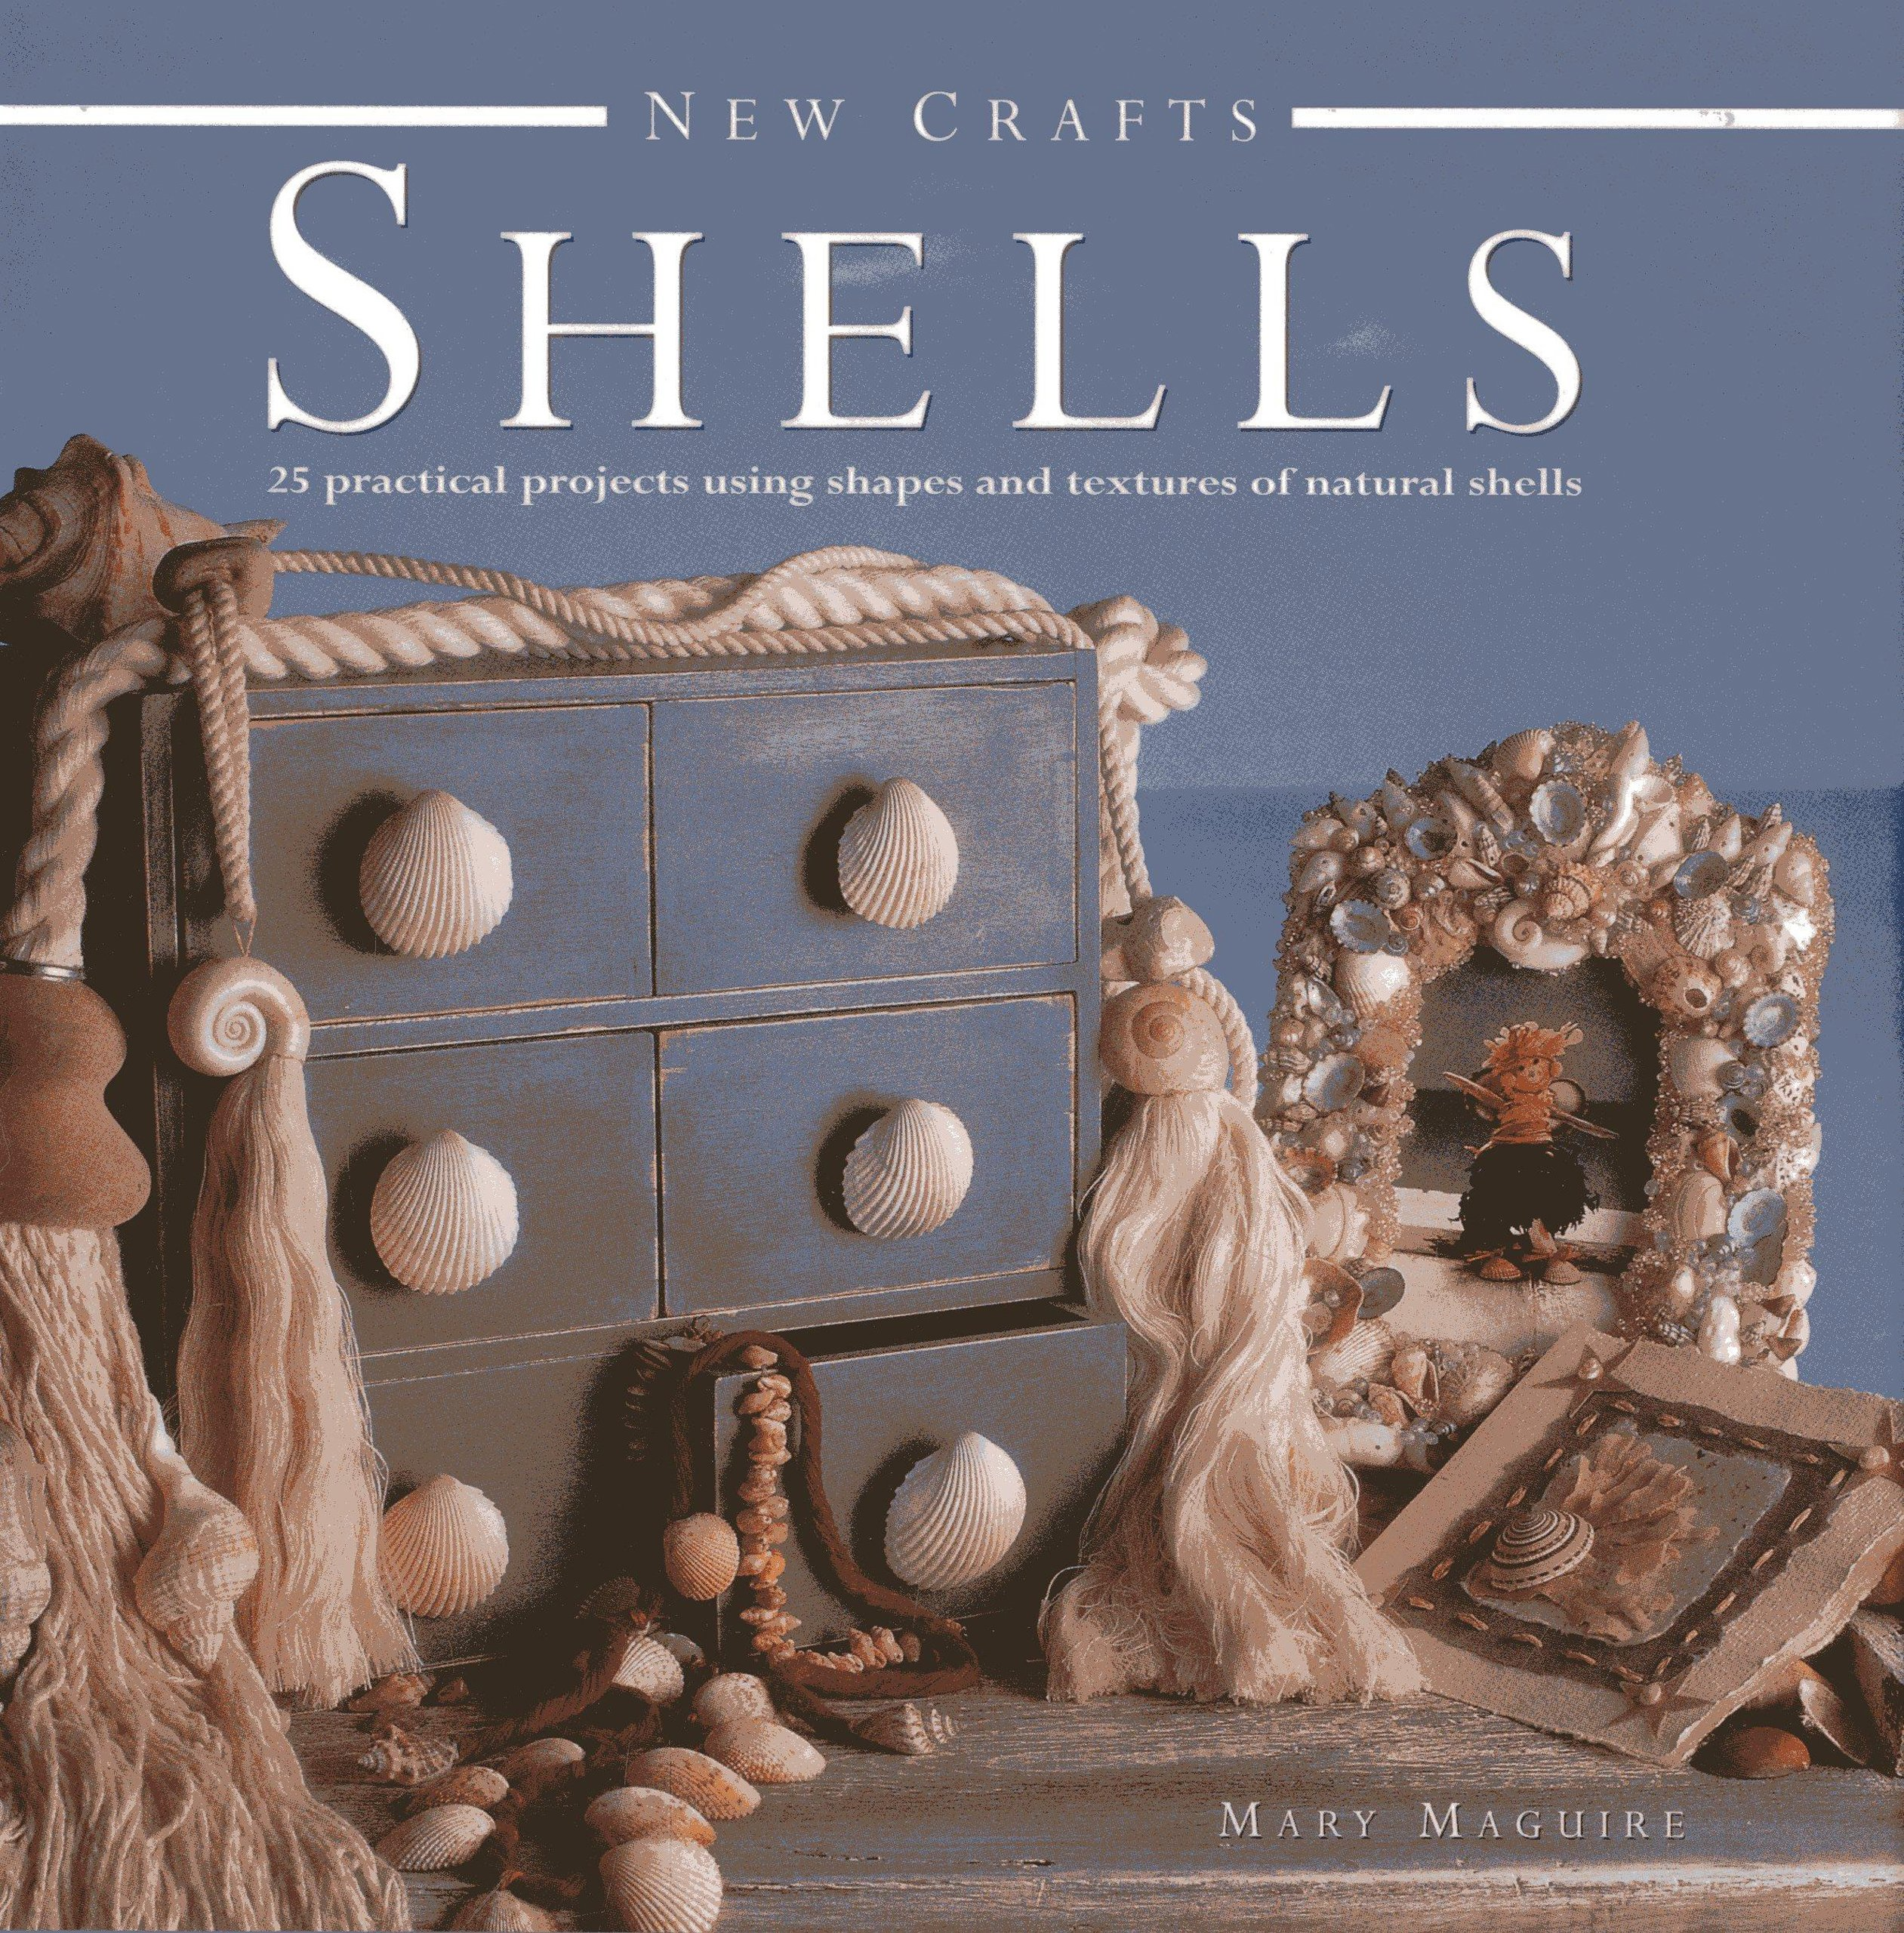 new-crafts-shells-25-practical-projects-using-shapes-and-textures-of-natural-shells